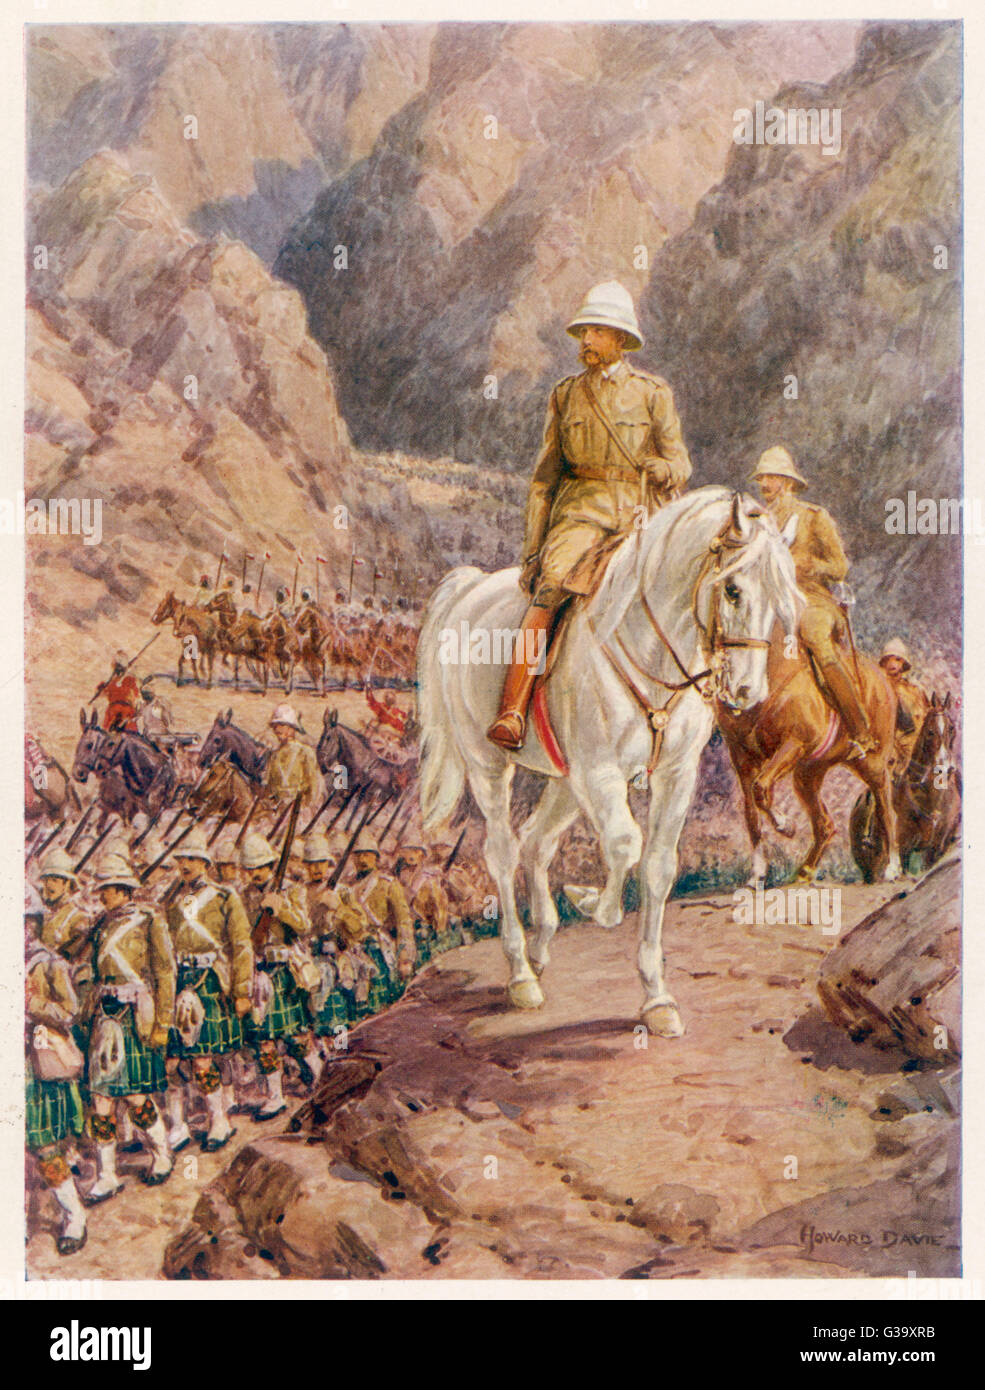 FREDERICK SLEIGH  1st EARL ROBERTS  British soldier on the march  to Kandahar in 1879 during  the Afghan conflict - Stock Image